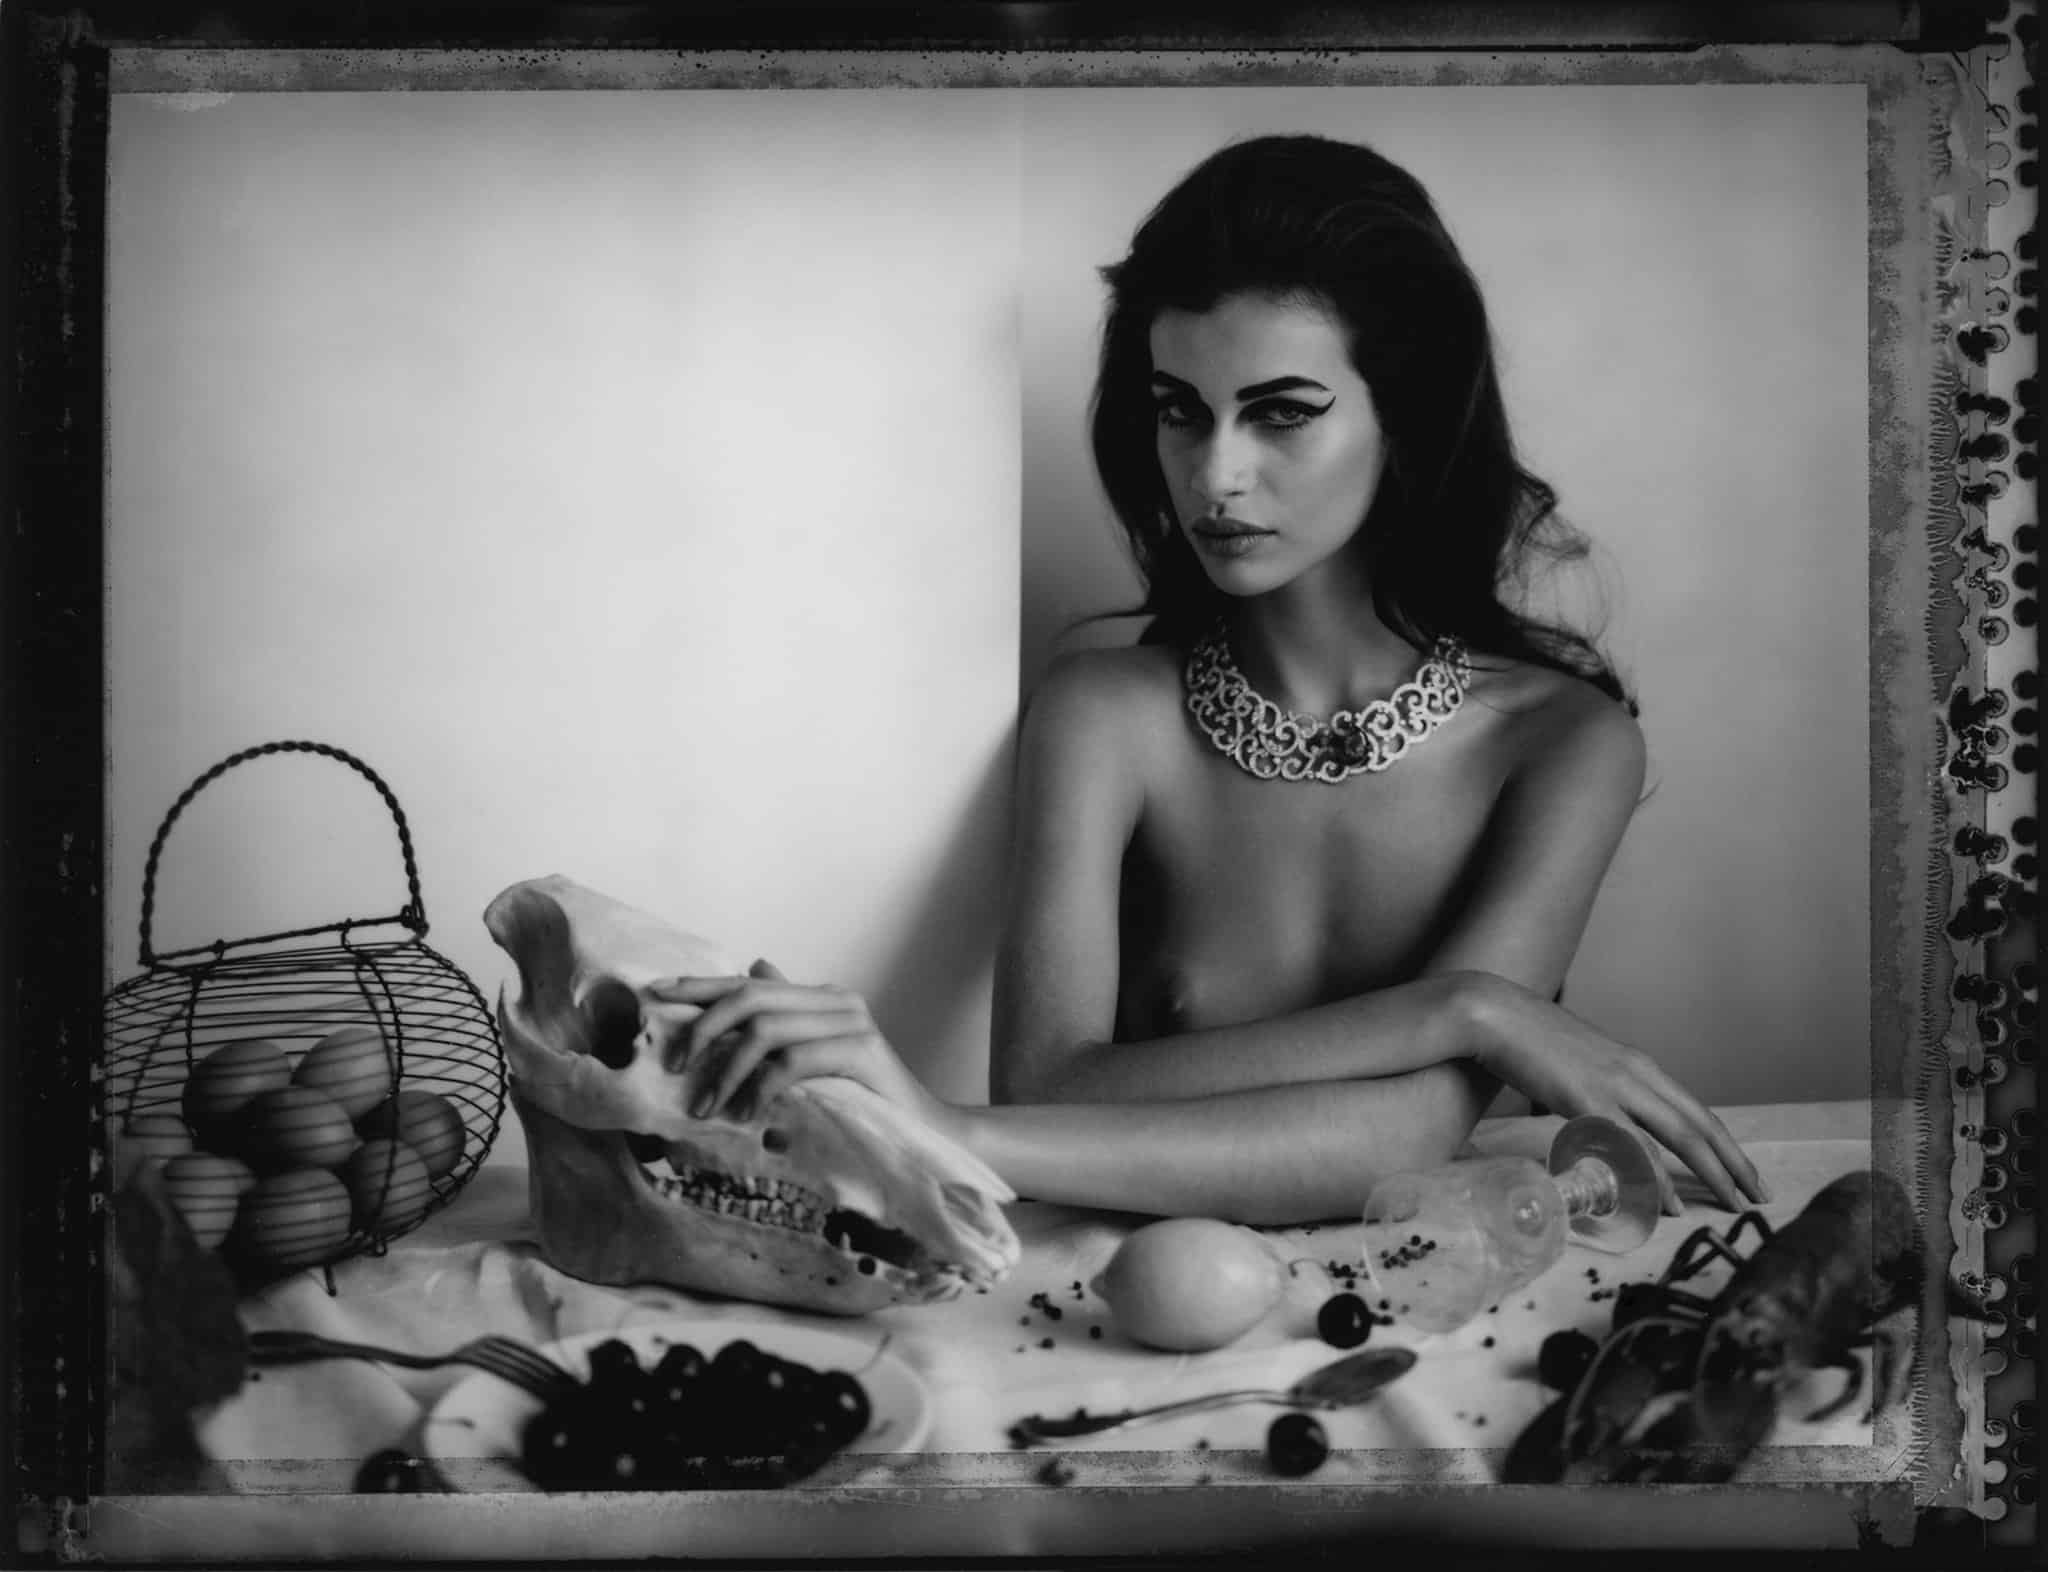 Fine art b/w photography of semi-nude fashion model wearing jewellery necklace and ring by Boucheron, sitting on a table with a horse skull, lobster, e.g., influenced by flemish still life paintings.